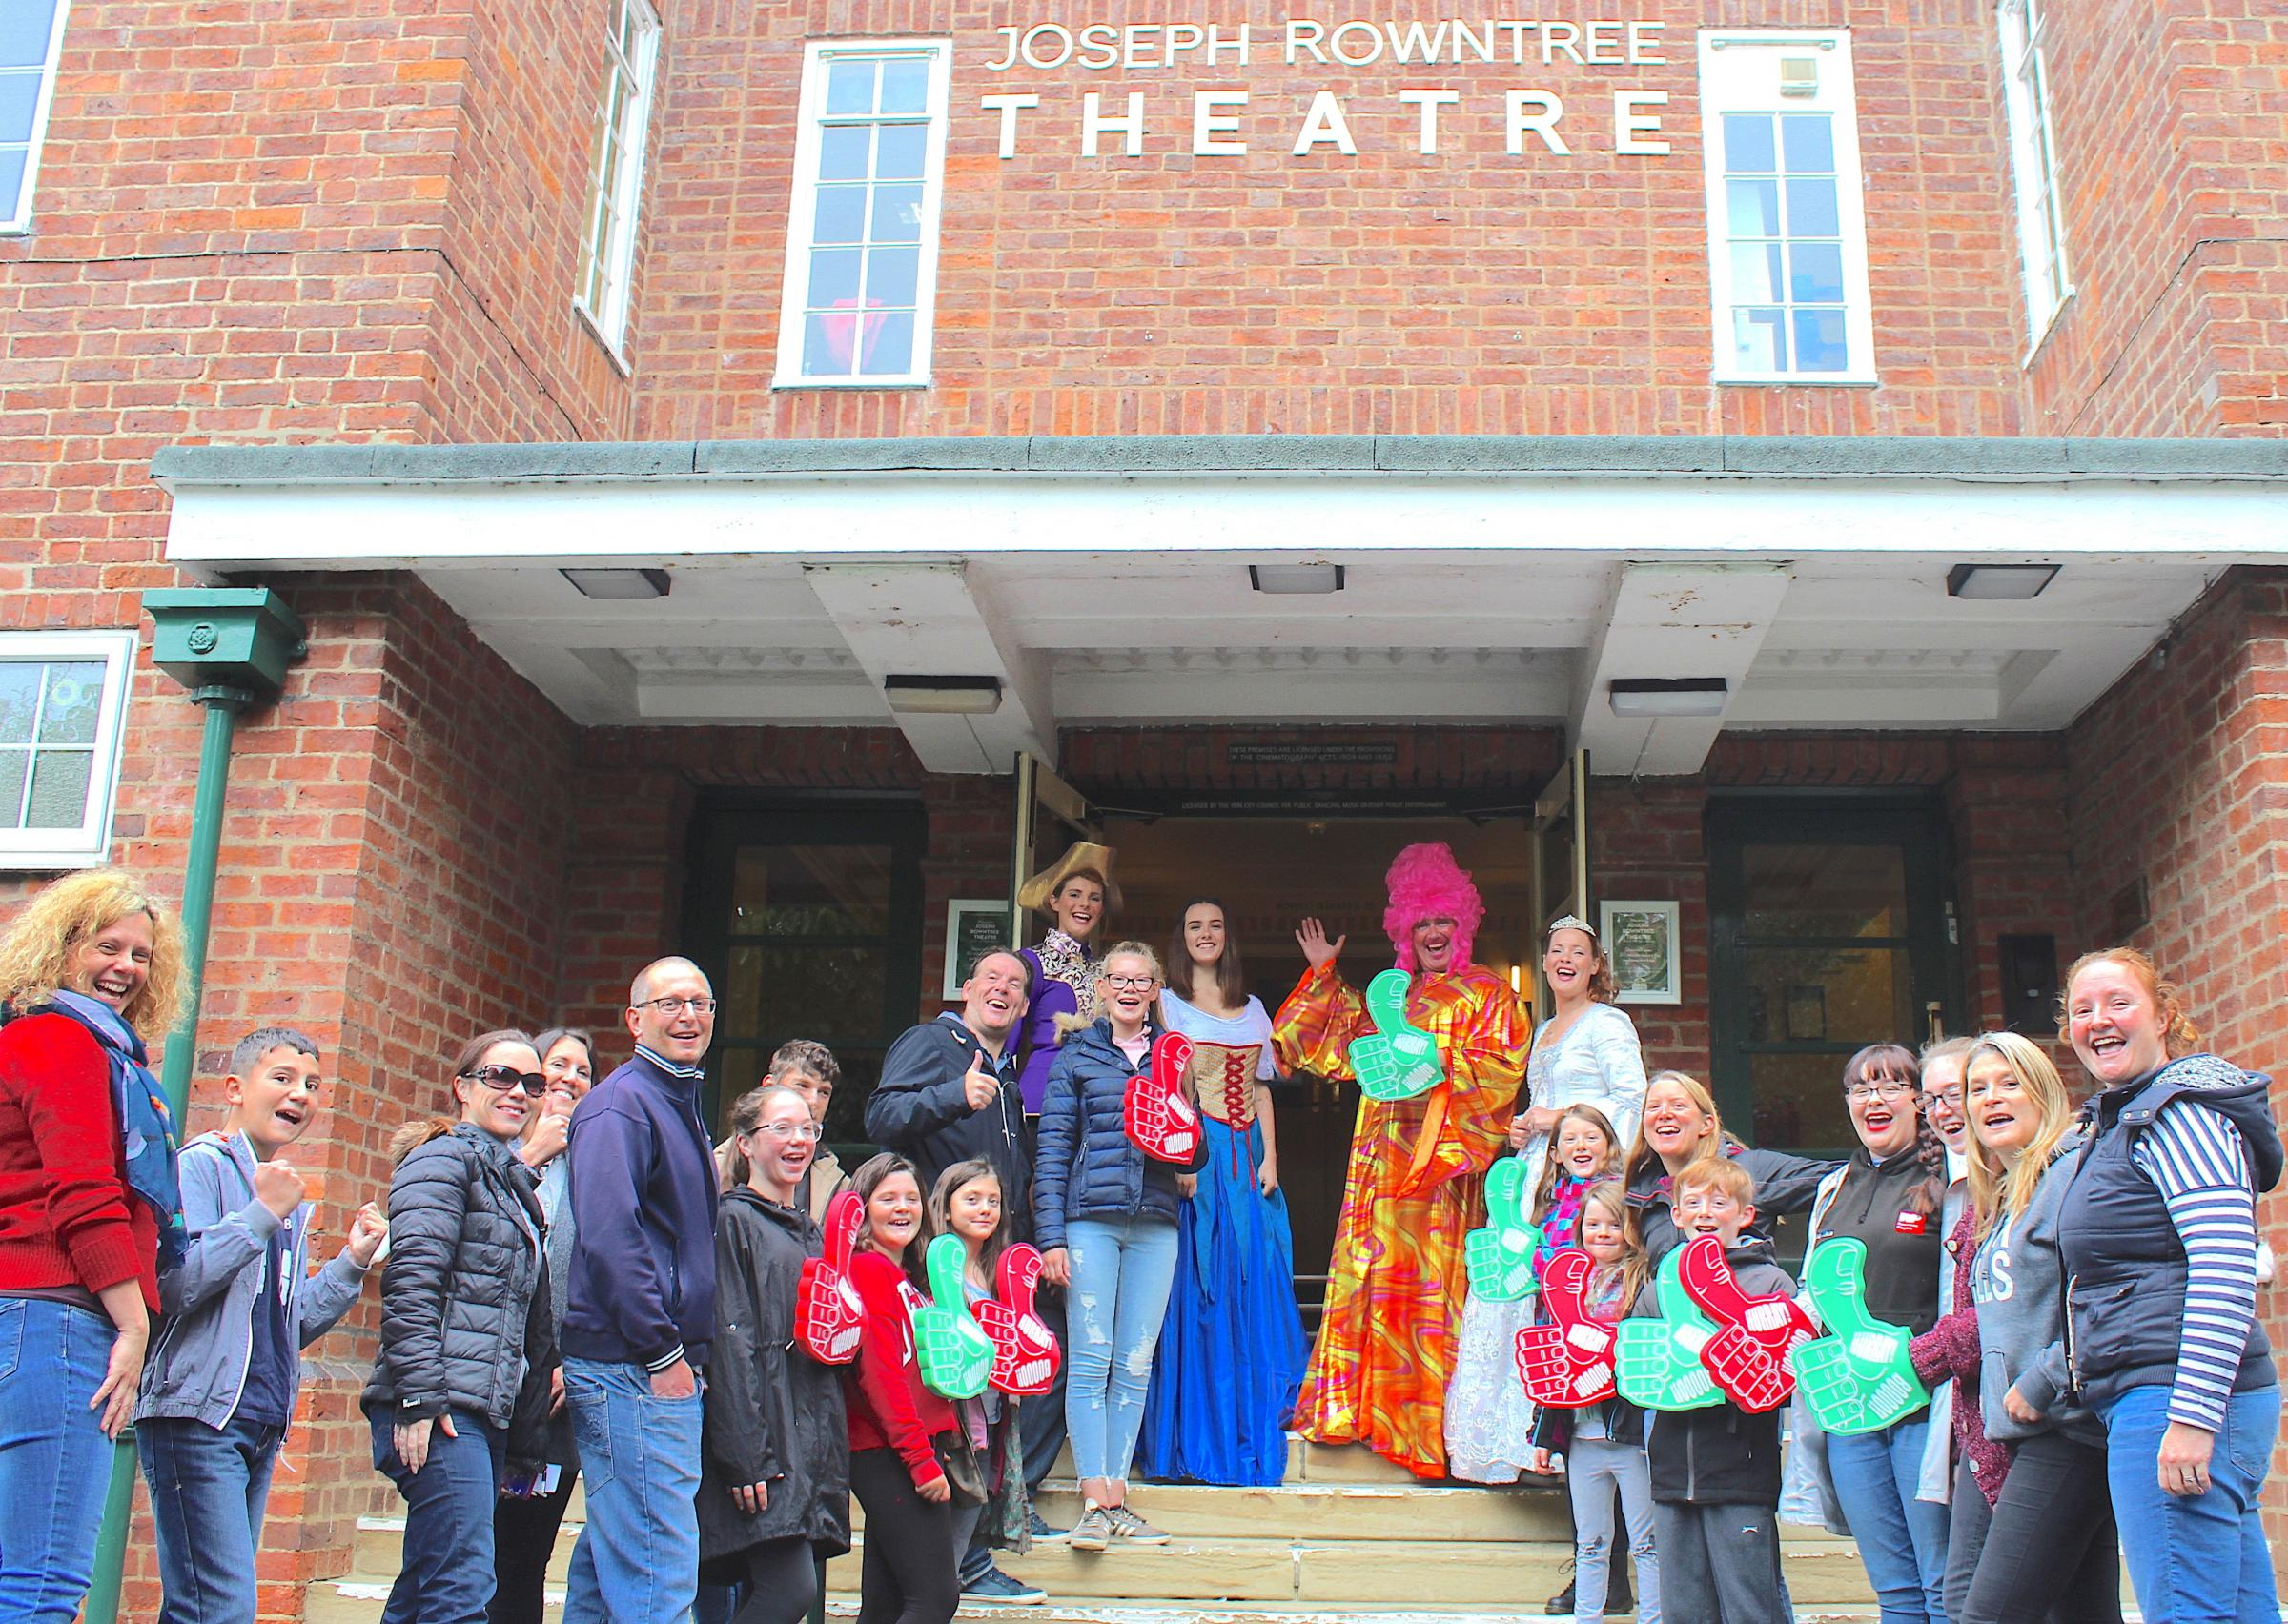 Rowntree Players launch their 2018 pantomime, Sleeping Beauty, on the steps of  the Joseph Rowntree Theatre